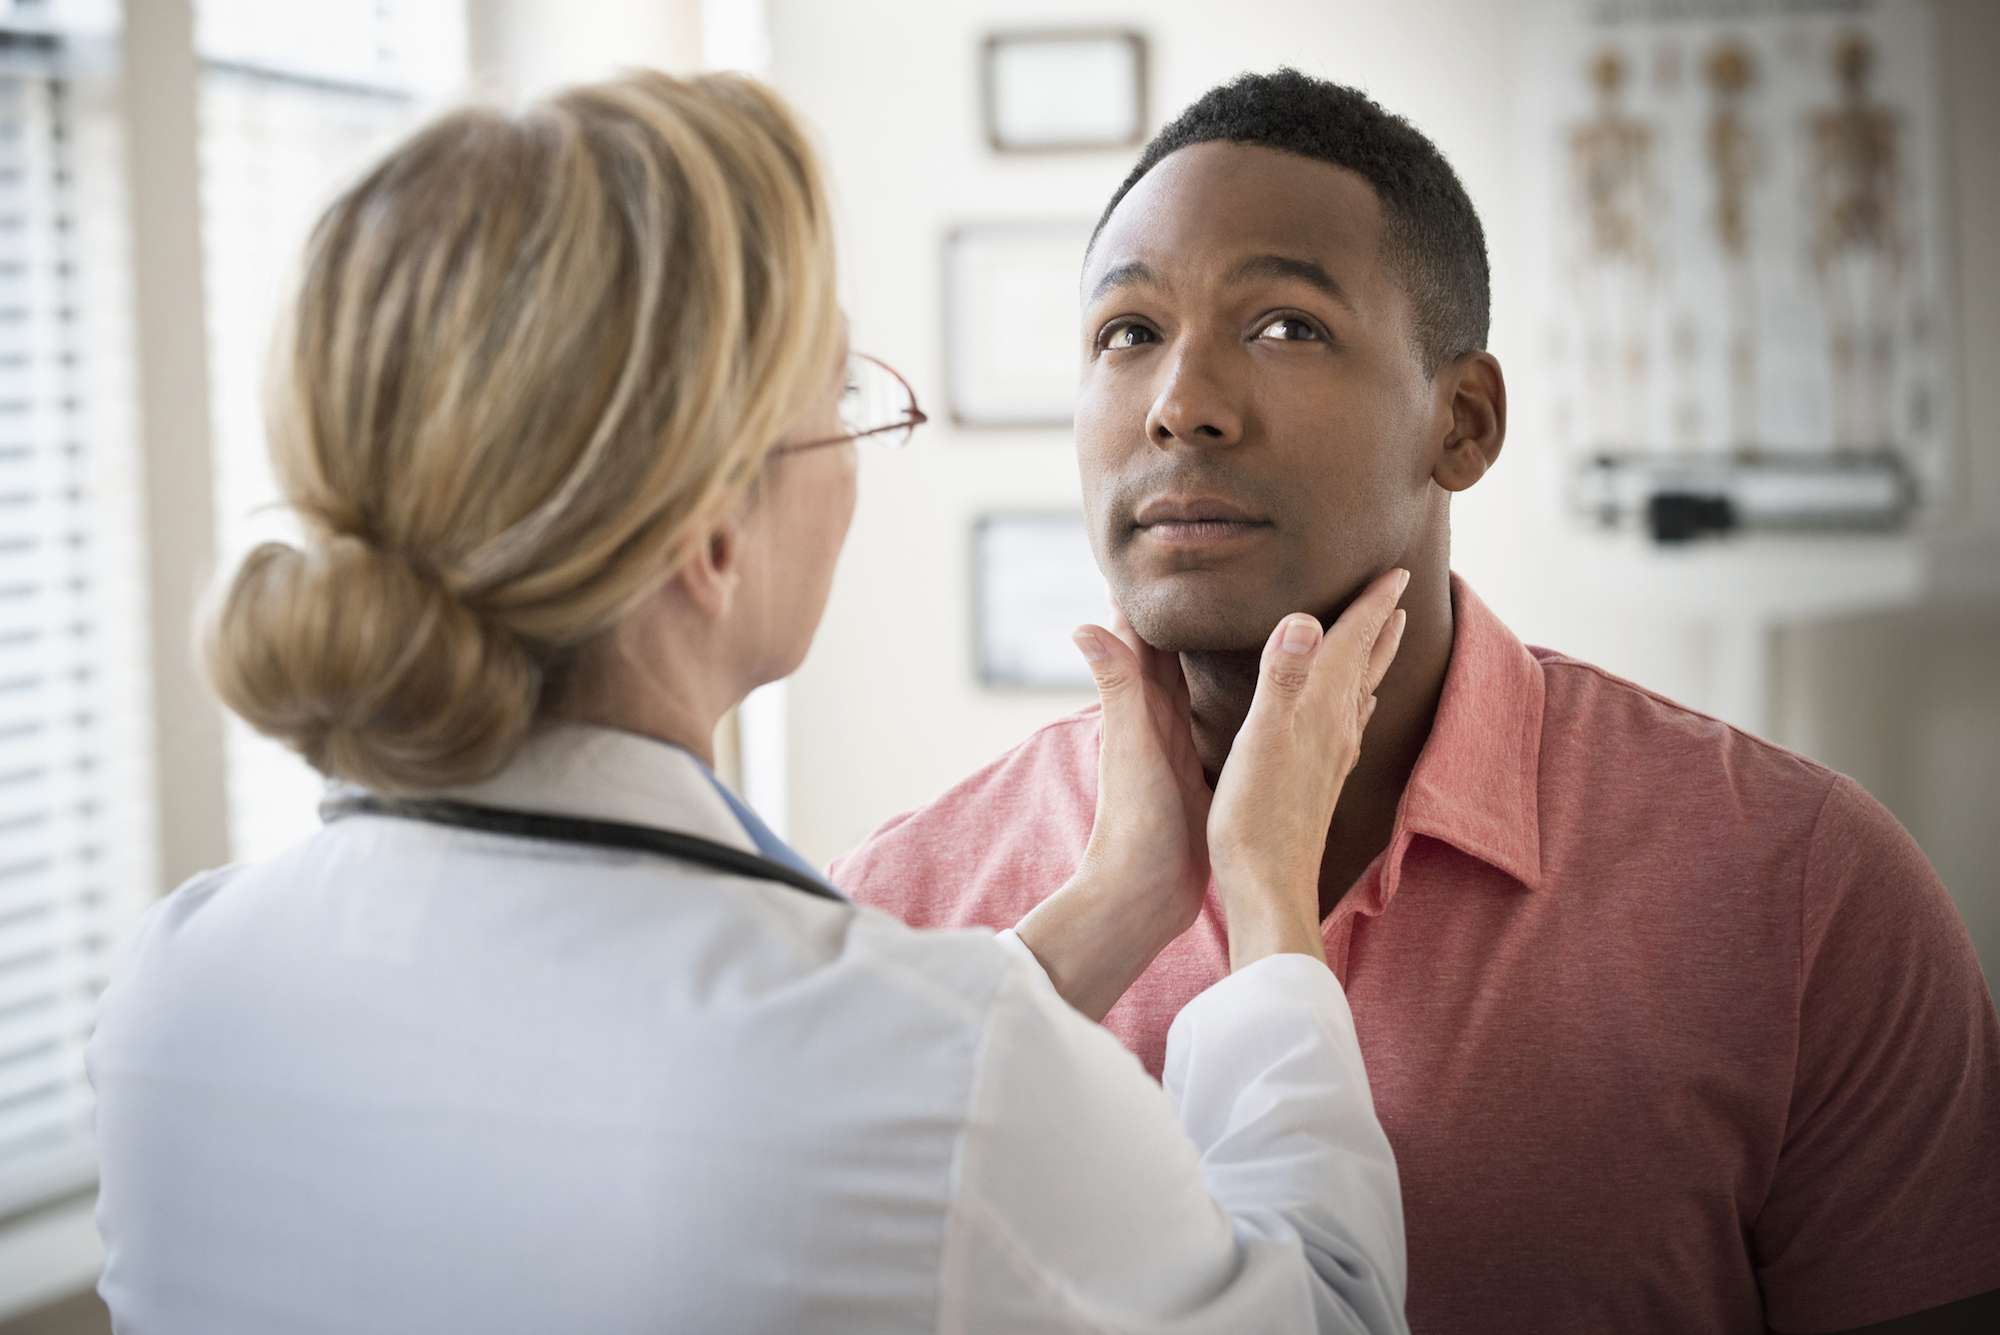 Doctor examining throat of patient in clinic